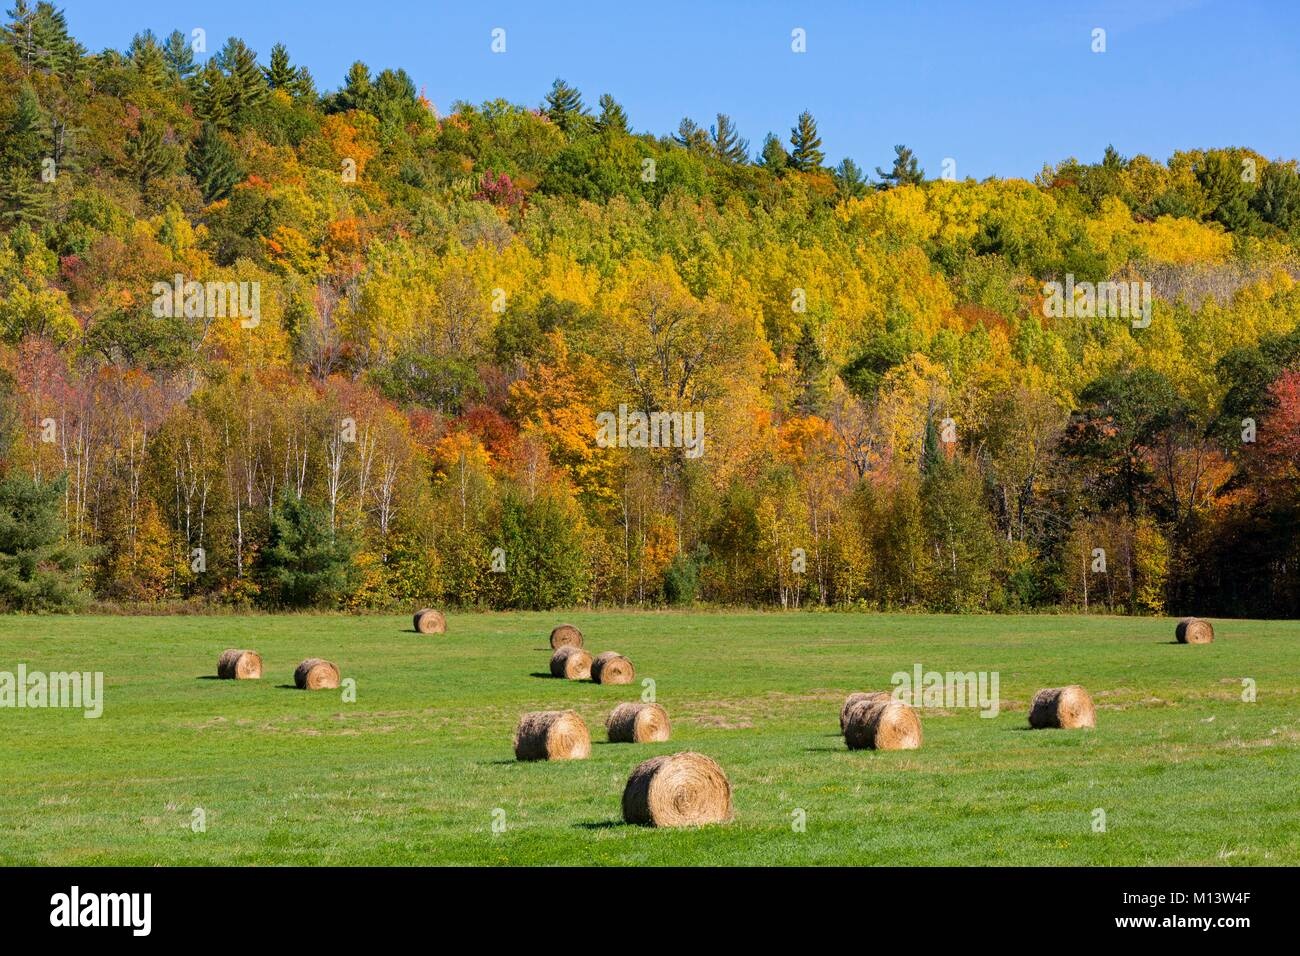 Canada, Province of Quebec, Outaouais, Pontiac region, L'Isle-aux-Allumettes area, field and bales of straw - Stock Image